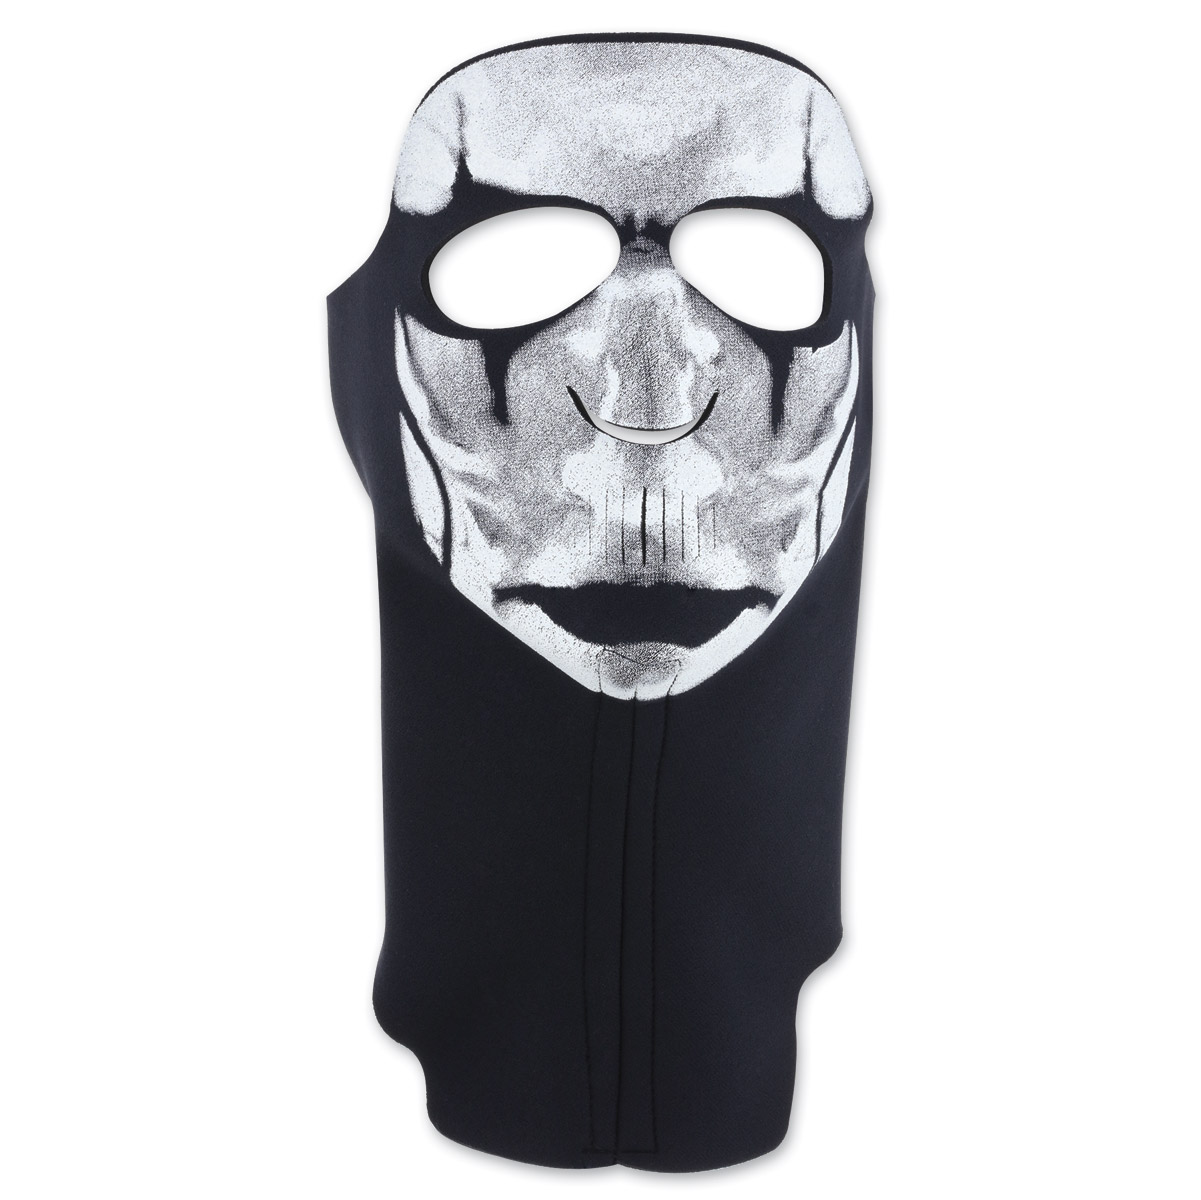 Wicked Wear Crow X-tremely Cool Weather Mask